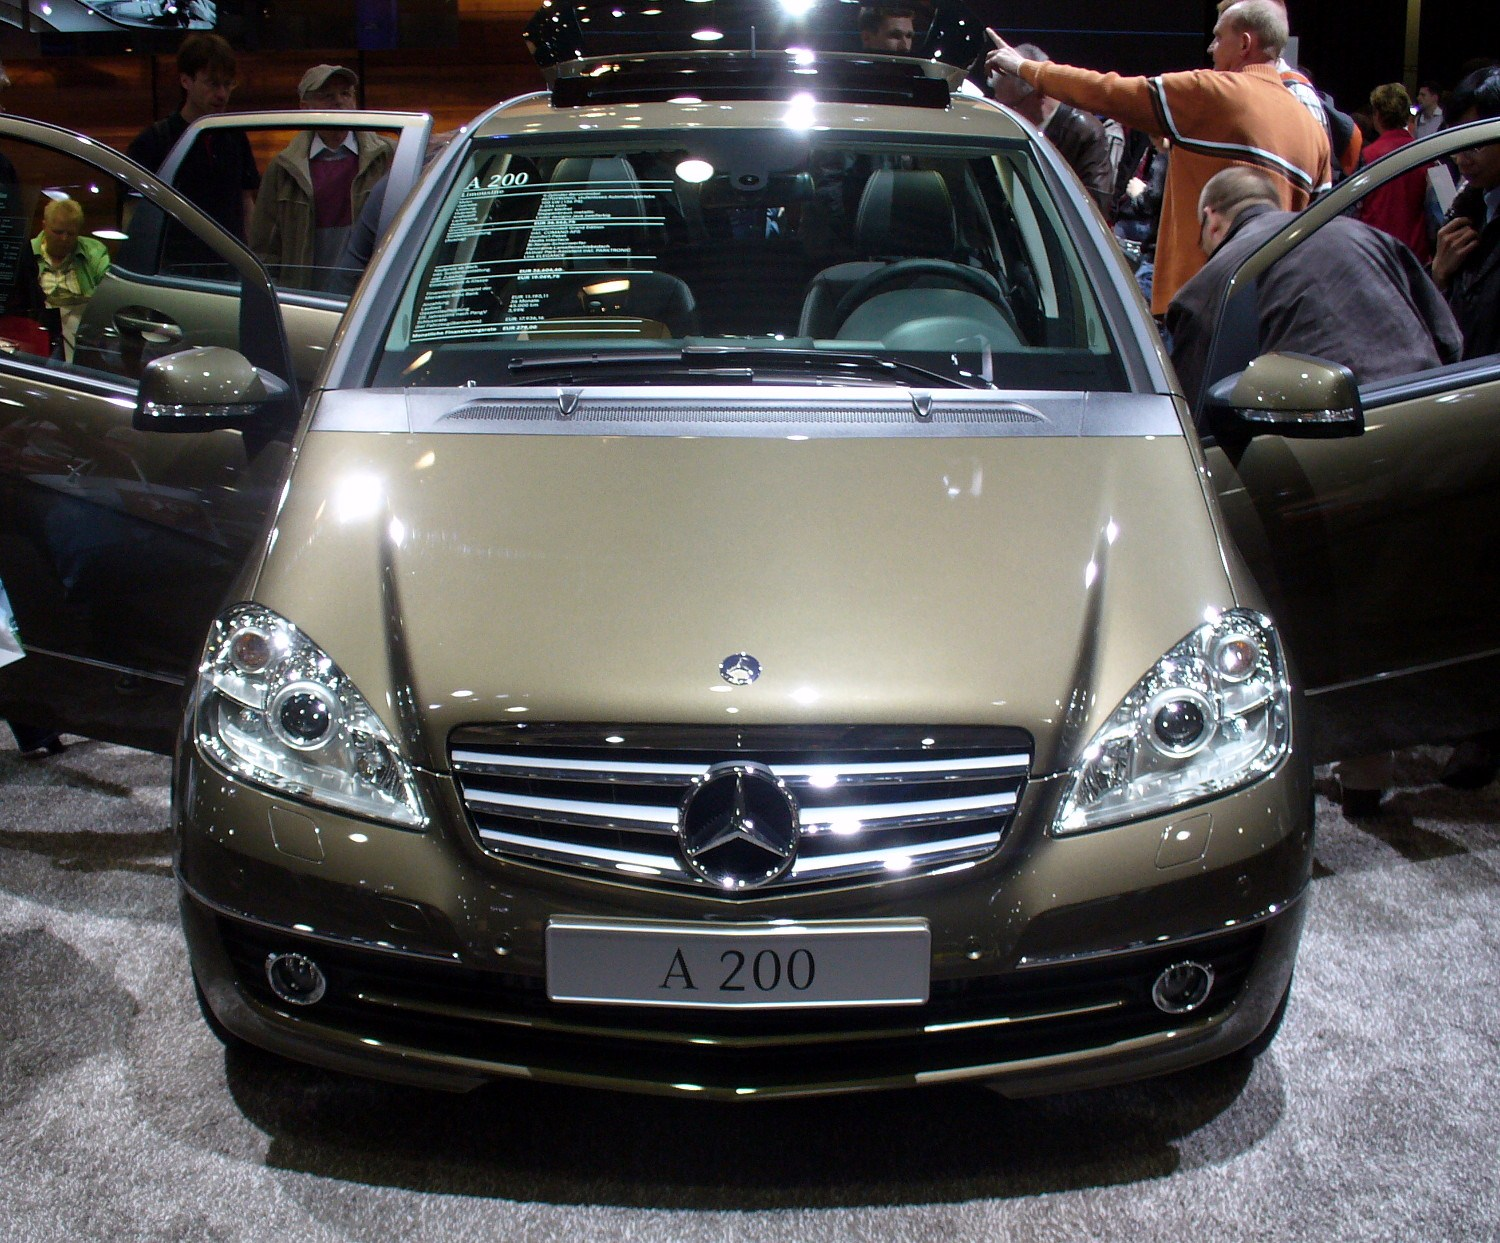 File mercedes benz w169 a200 facelift jpg wikimedia commons - Specchio mercedes classe a w169 ...